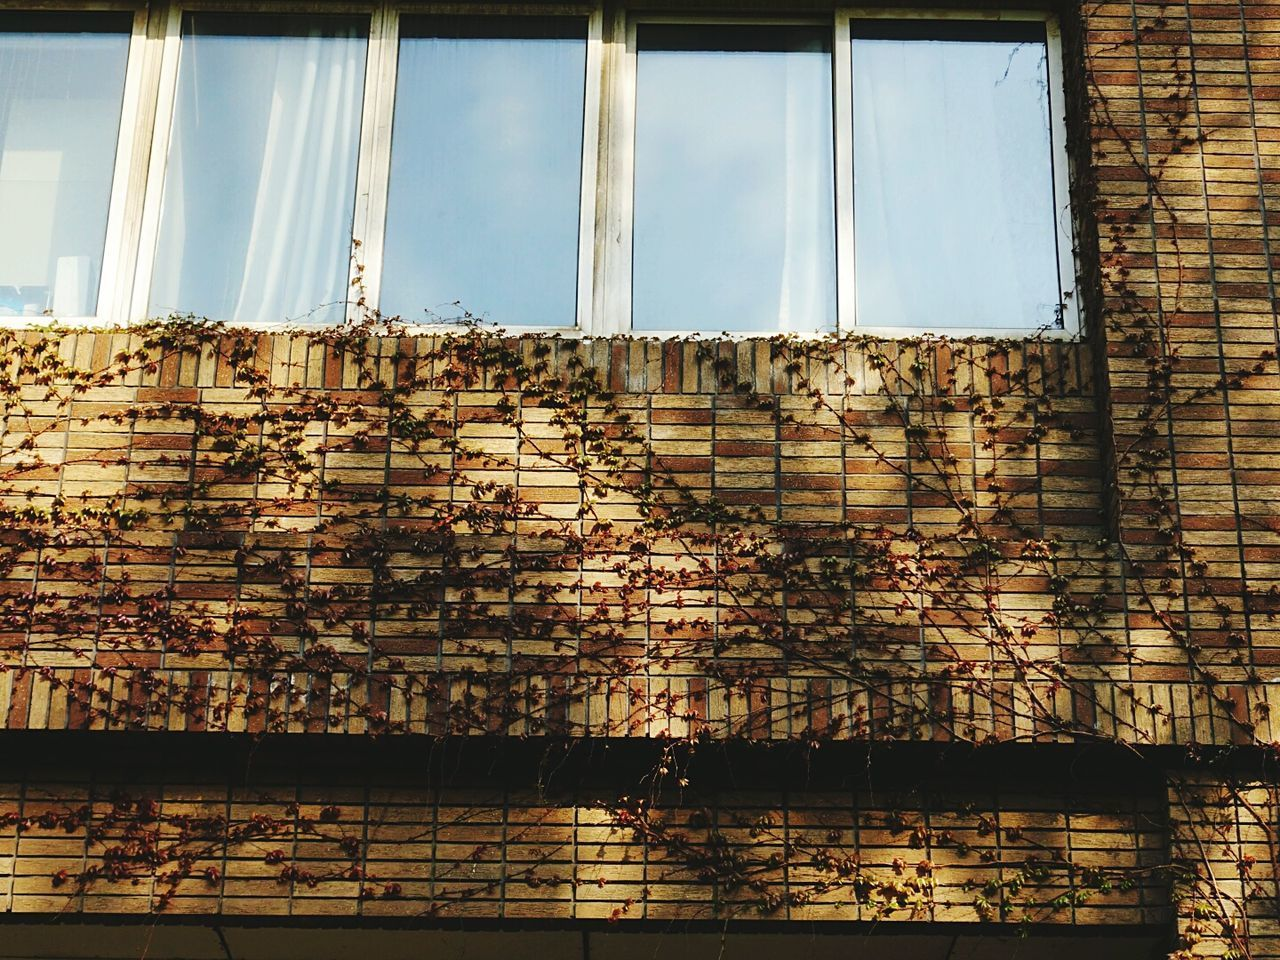 window, architecture, built structure, building exterior, brick wall, day, no people, low angle view, sky, indoors, close-up